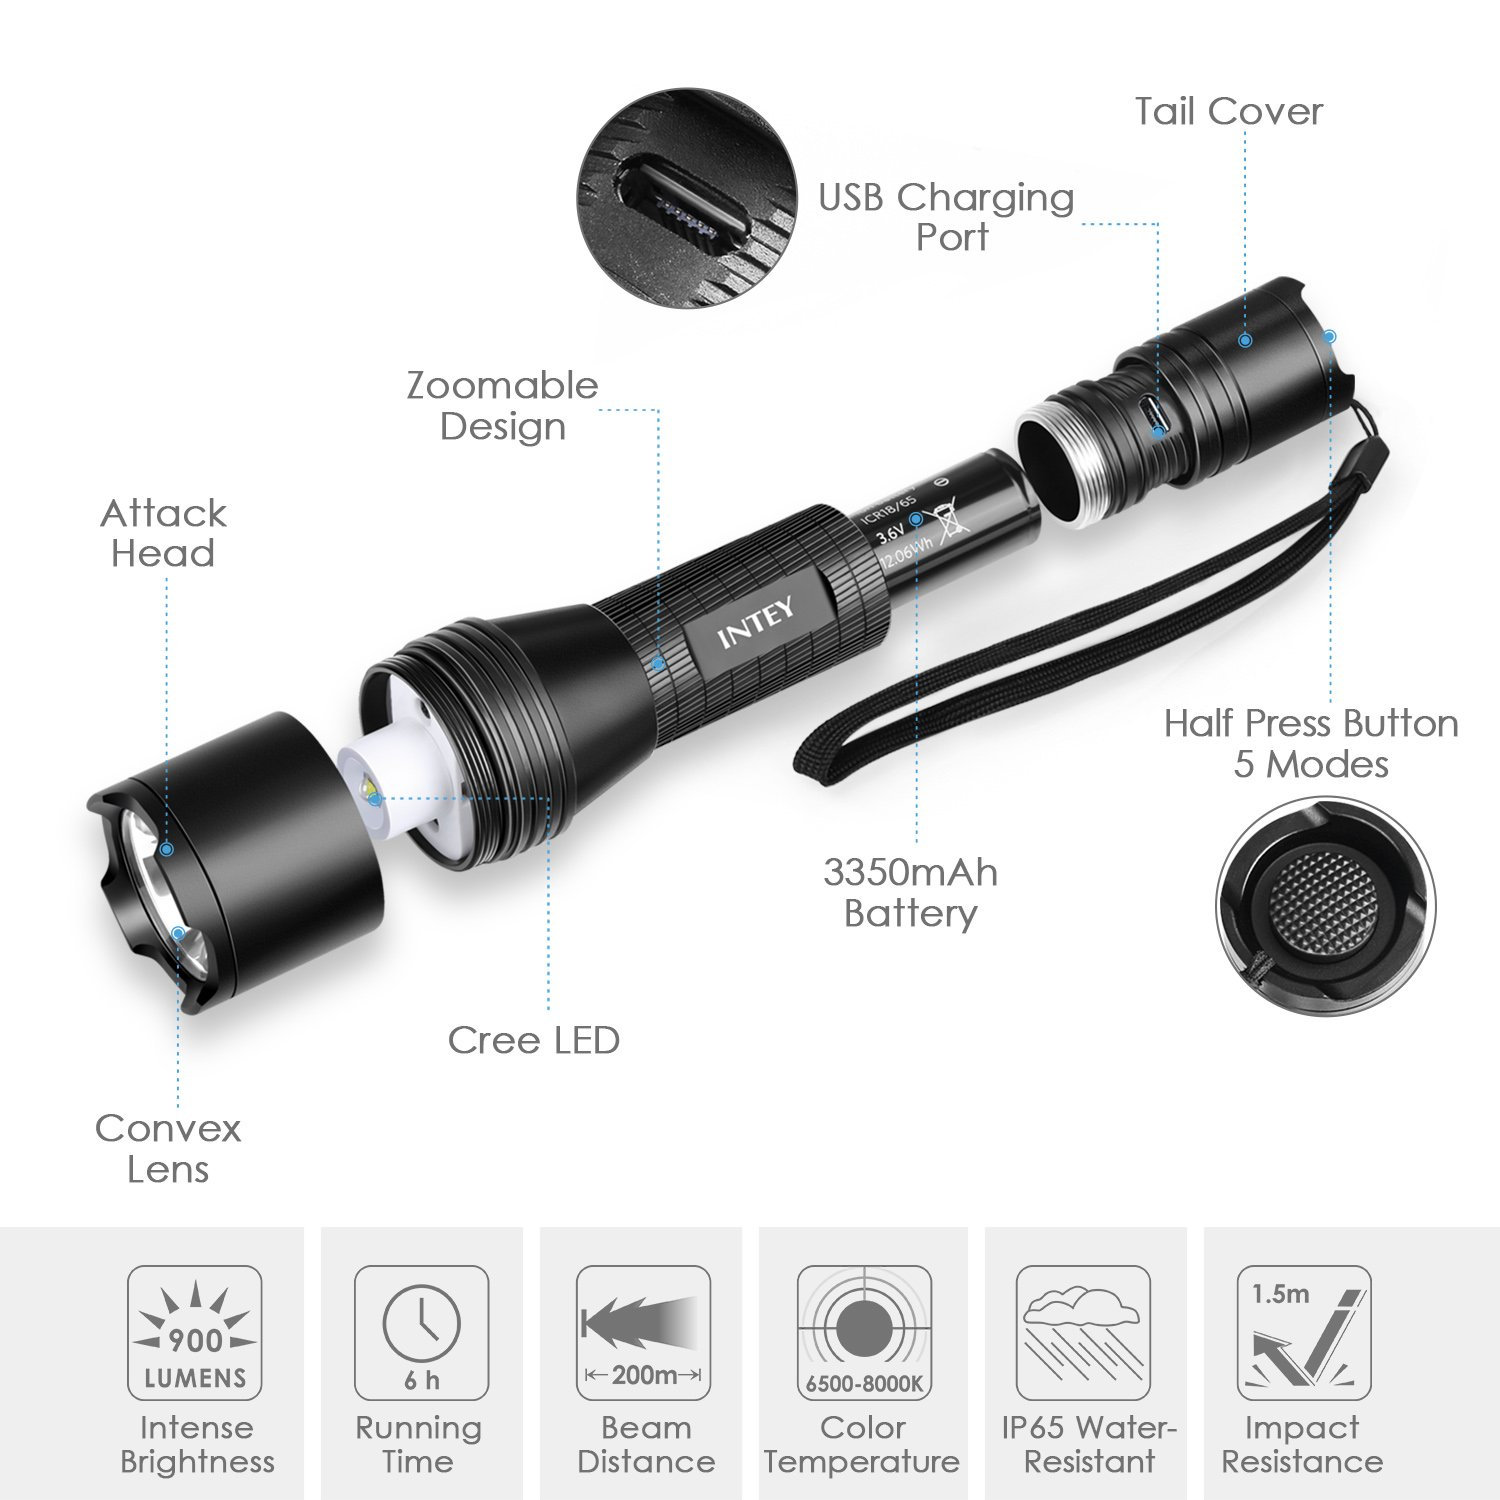 INTEY Tactical Flashlight USB Rechargeable LED Flashlight Zoomable Waterproof 900 Lumens Torch Light